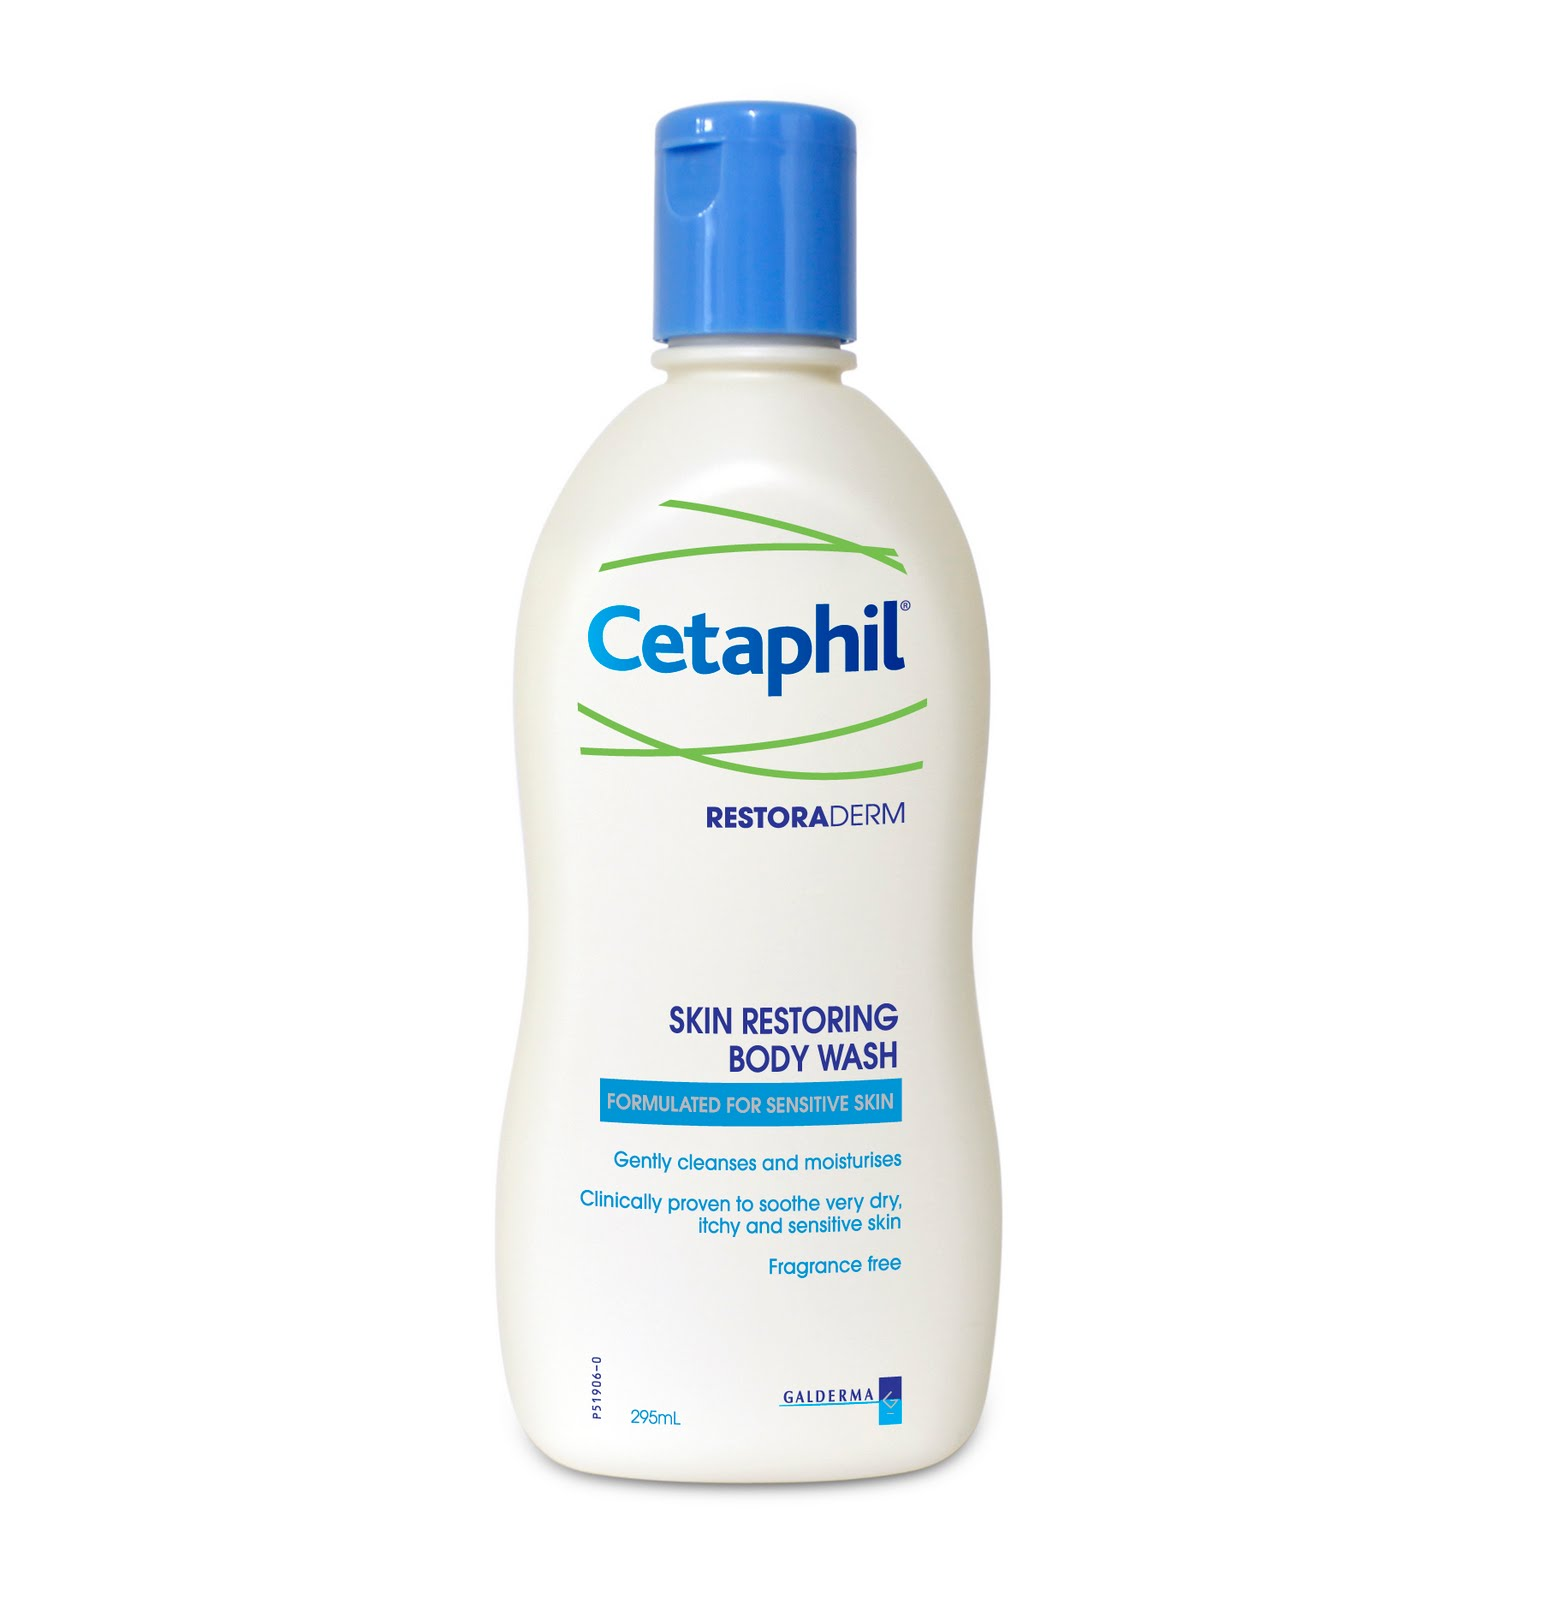 Cetaphil Restoraderm Body Wash Cosmedic Clinic